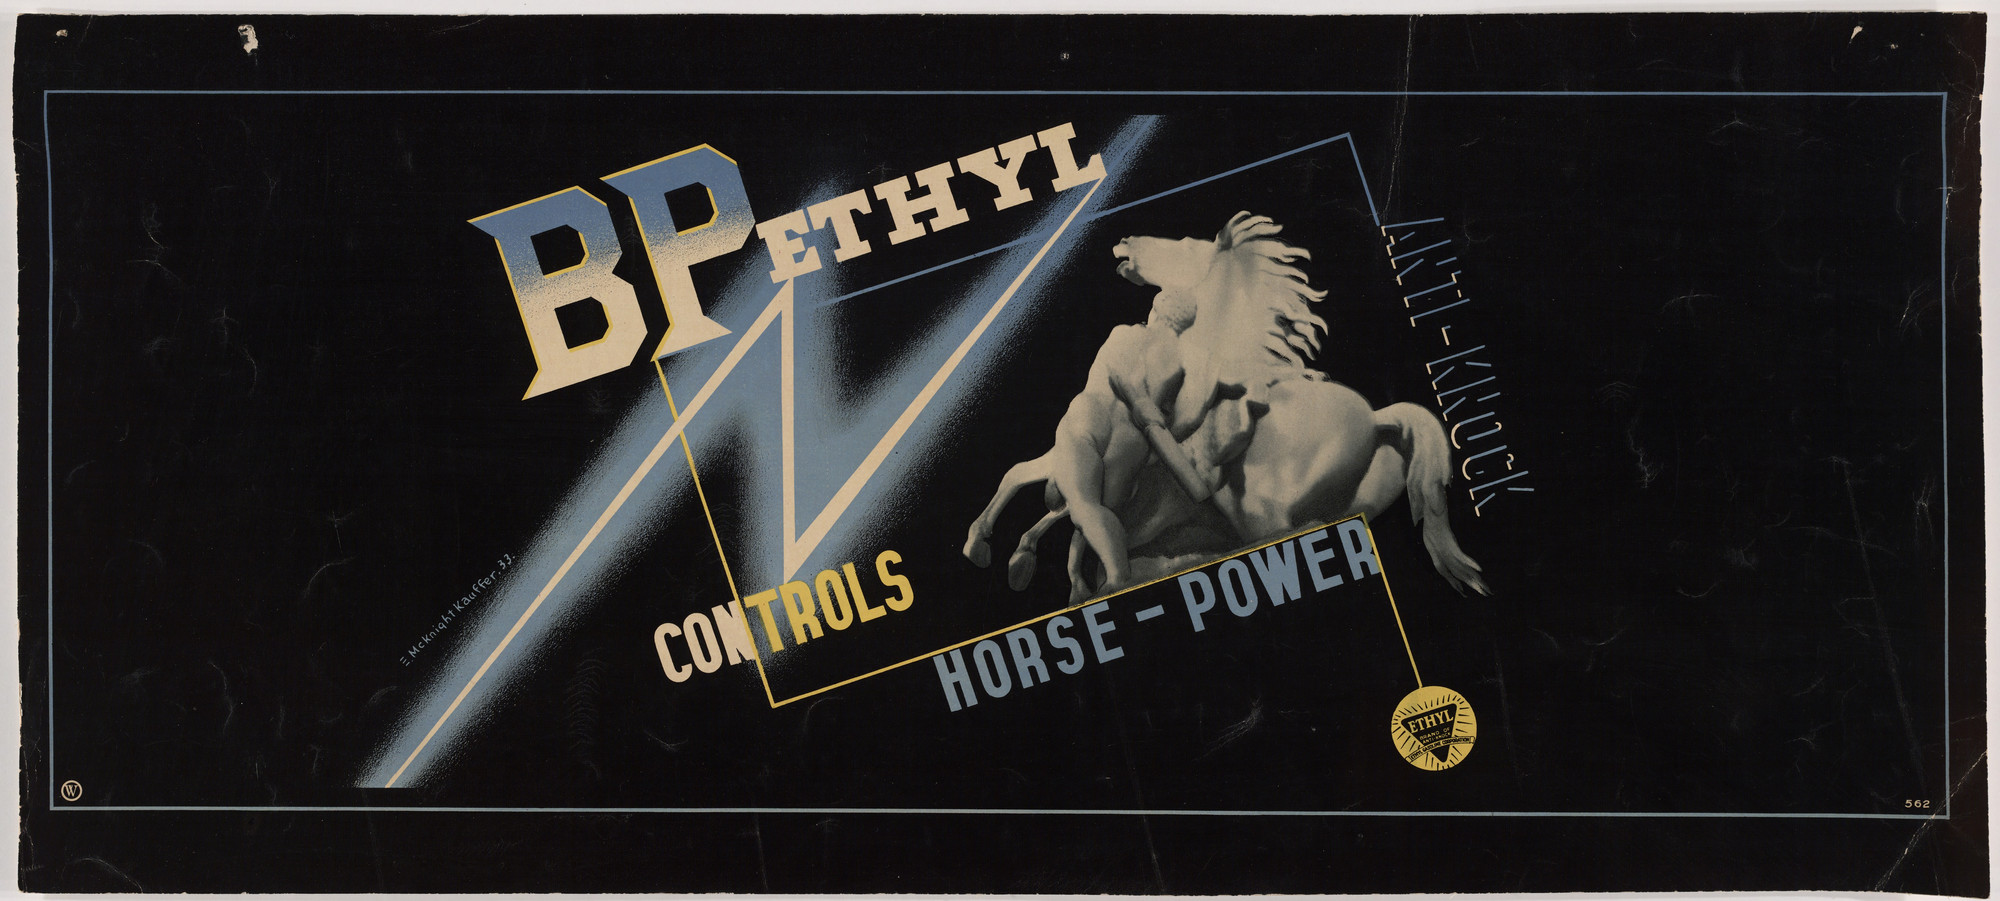 E. McKnight Kauffer. B.P. Ethyl Anti-Knock Controls Horse-Power. 1933